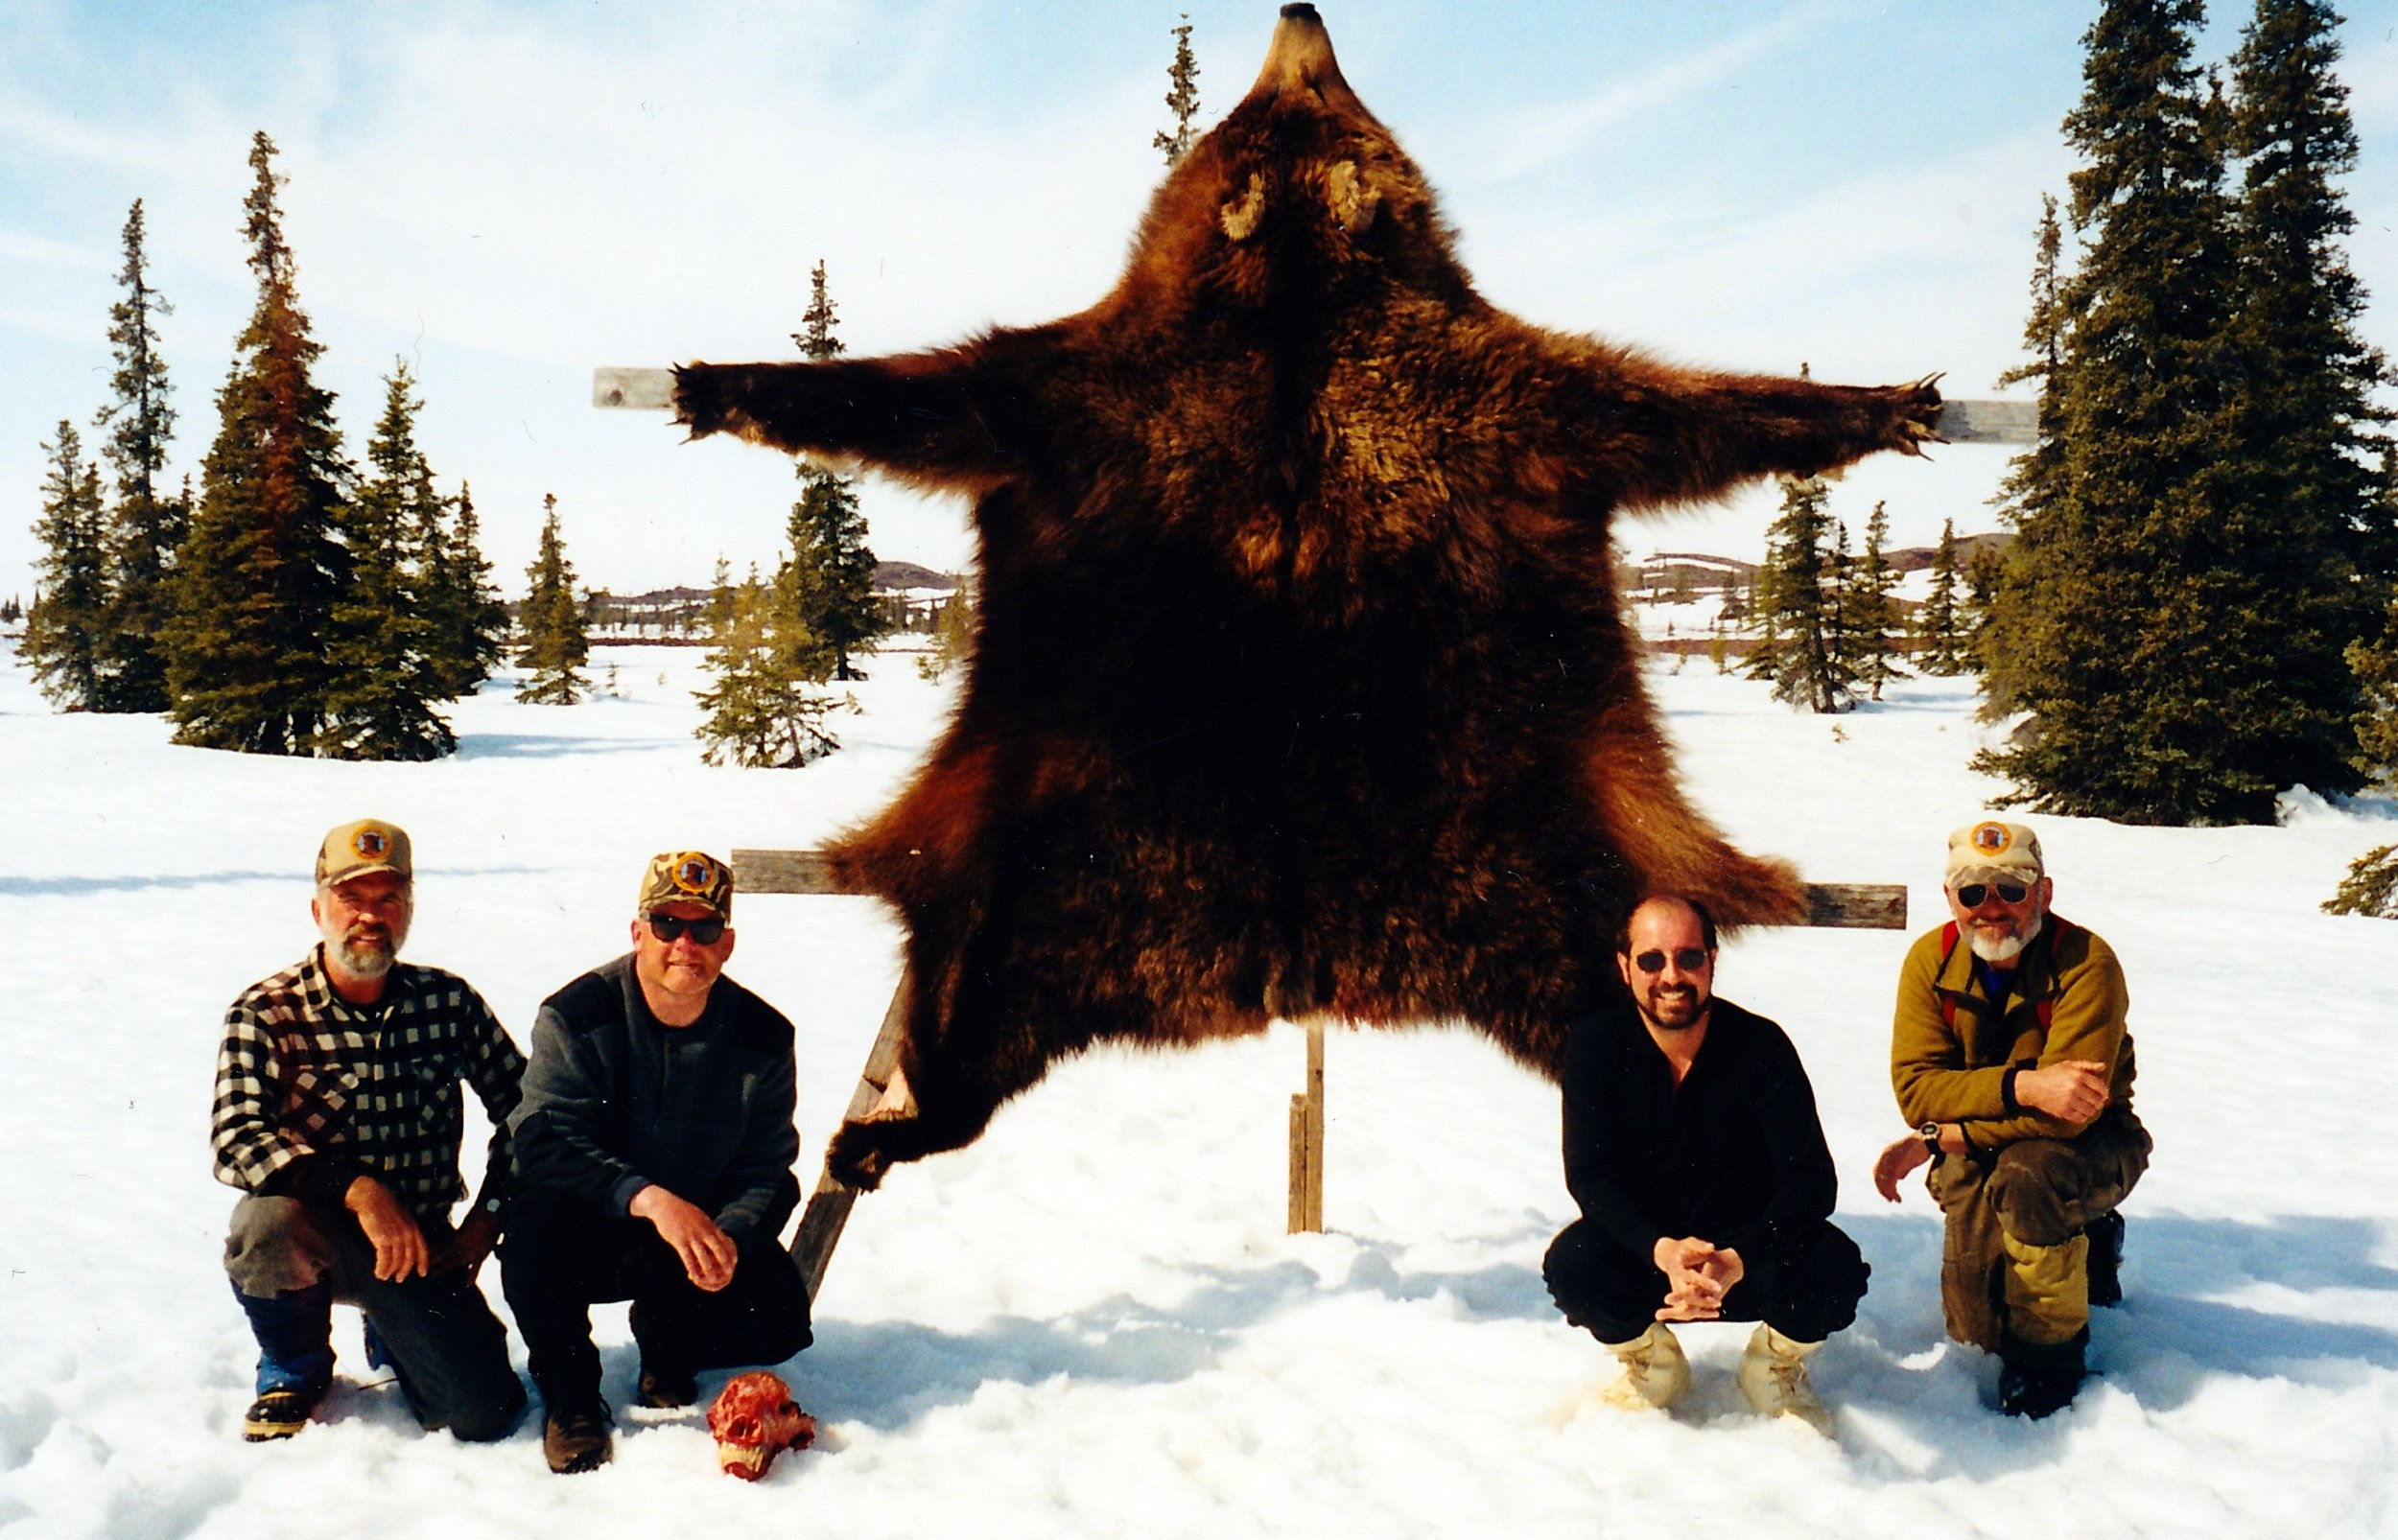 One of the many bears taken in the area. (L to R) Myself, Robin Margolis, Hurricane,WV, Dee and Dan.